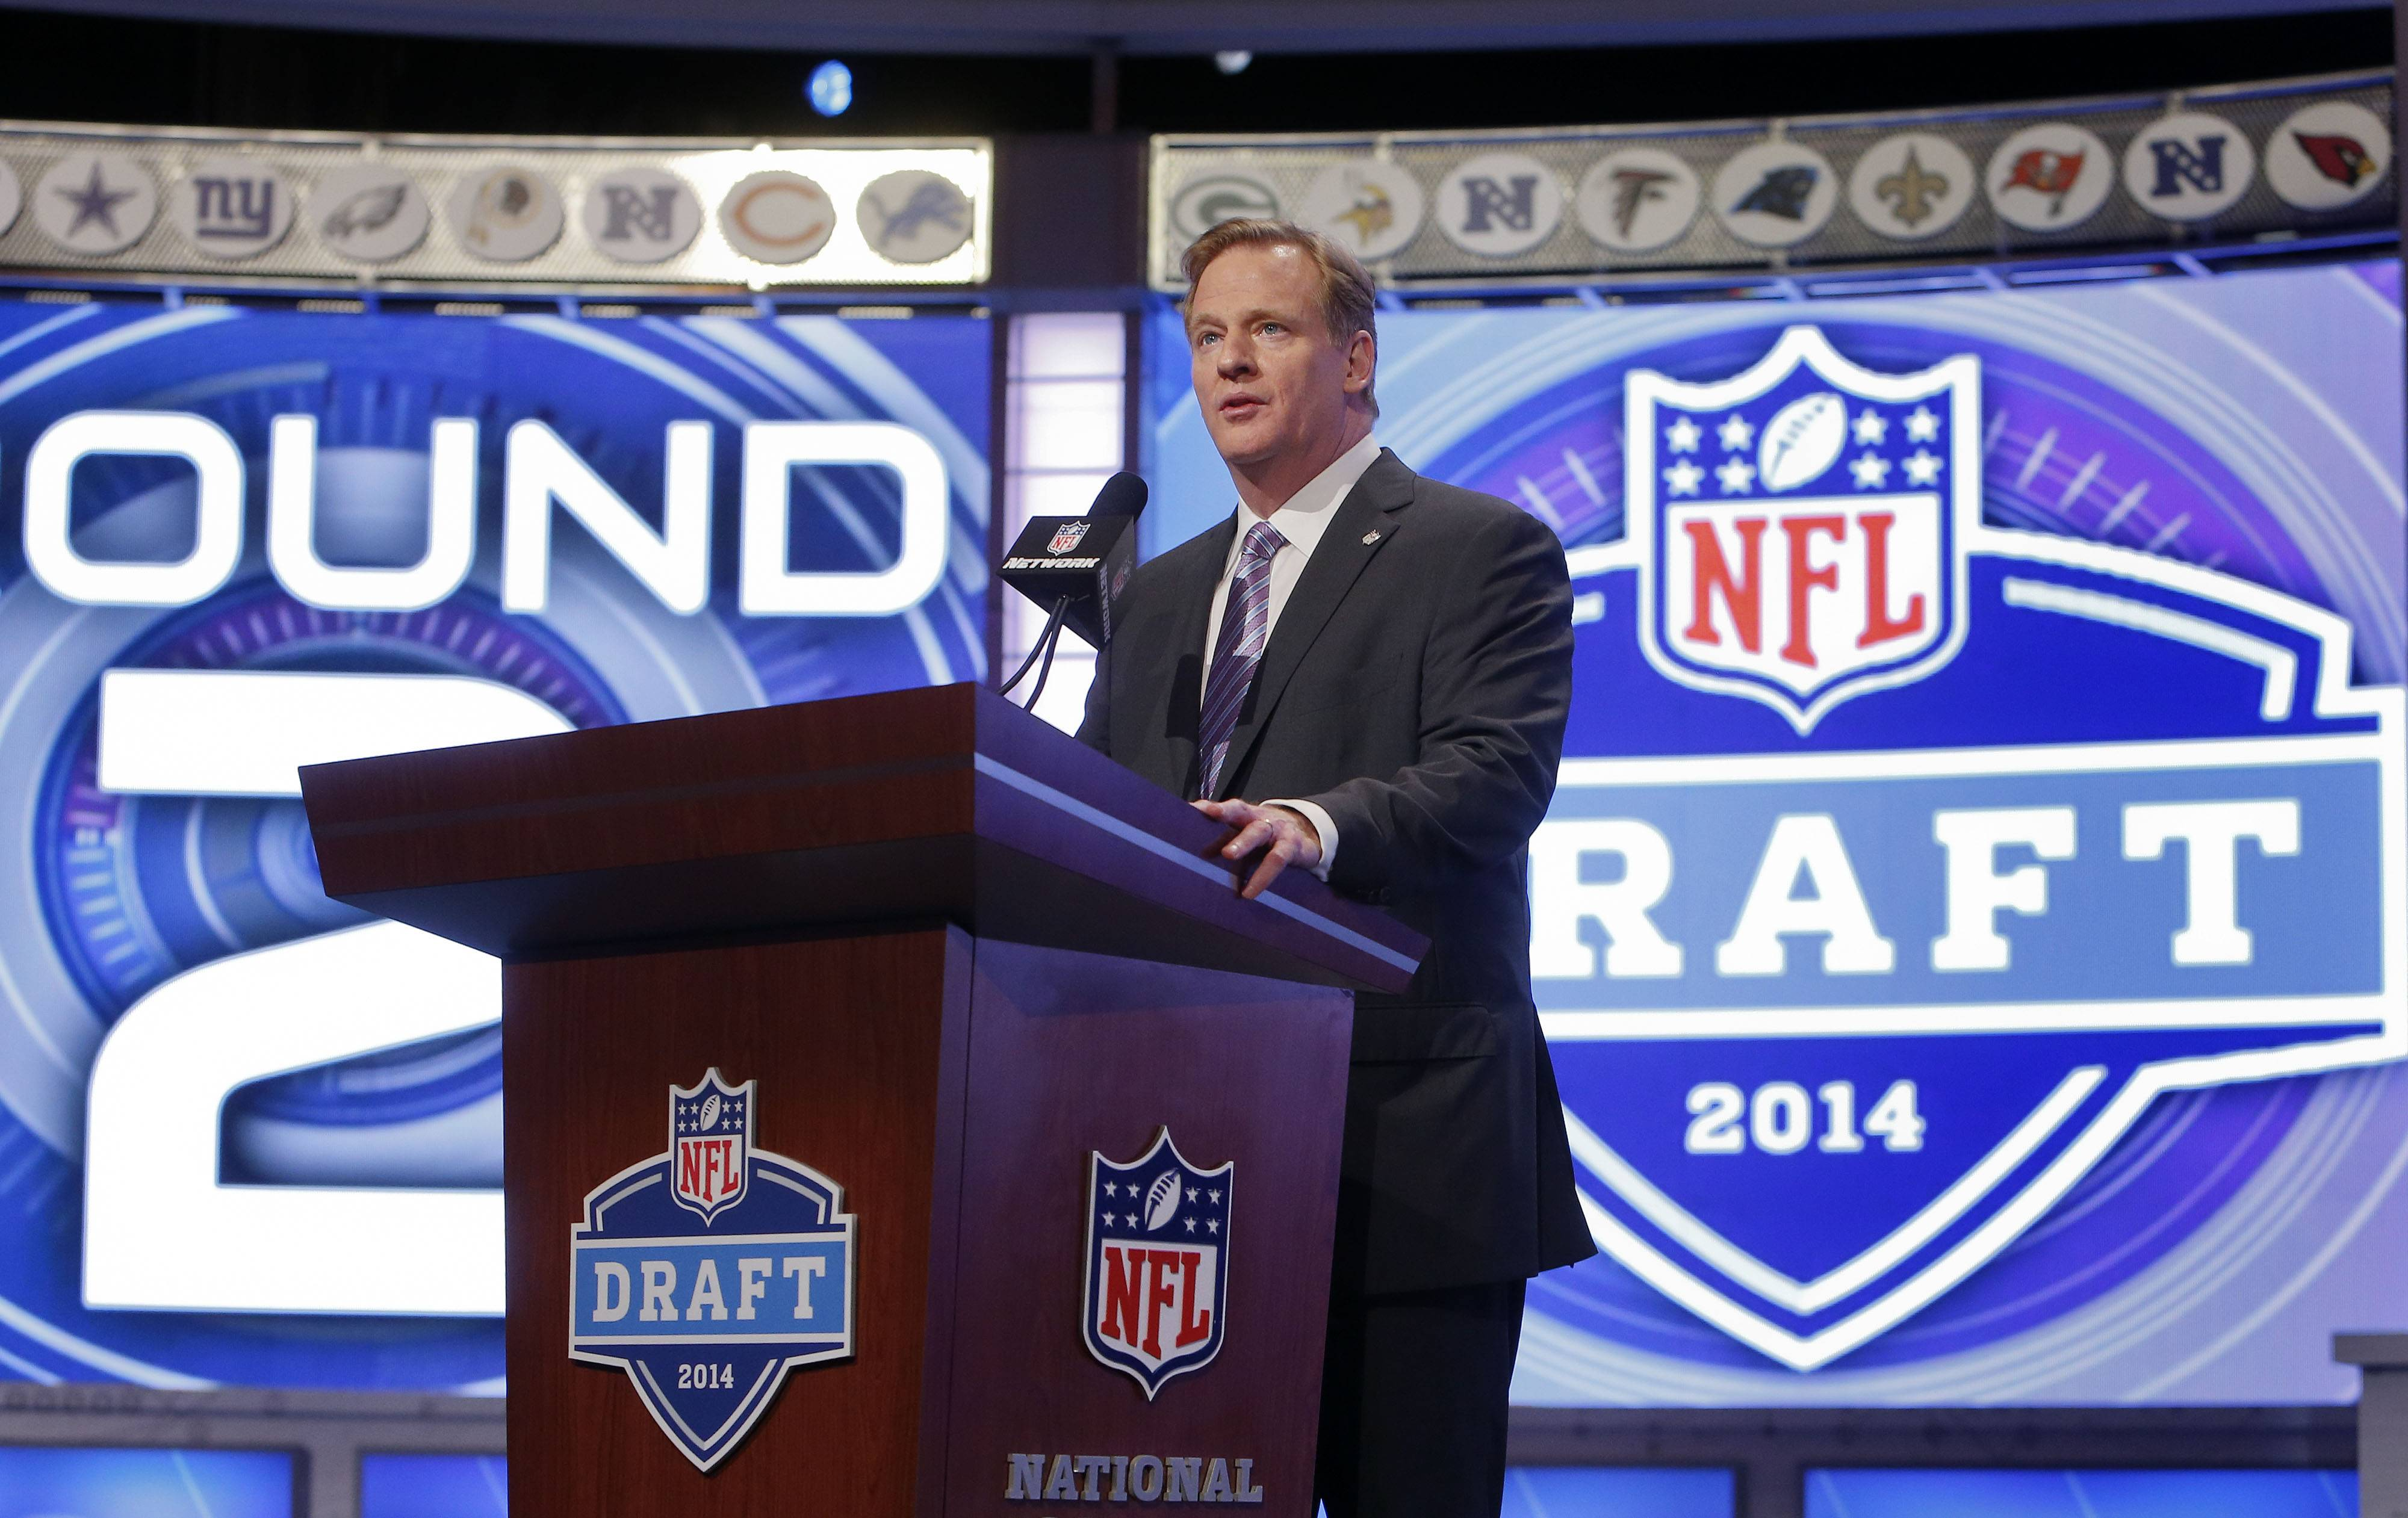 NFL commissioner Roger Goodell announces the opening of the second round of the 2014 NFL Draft, Friday, May 9, 2014, in New York.